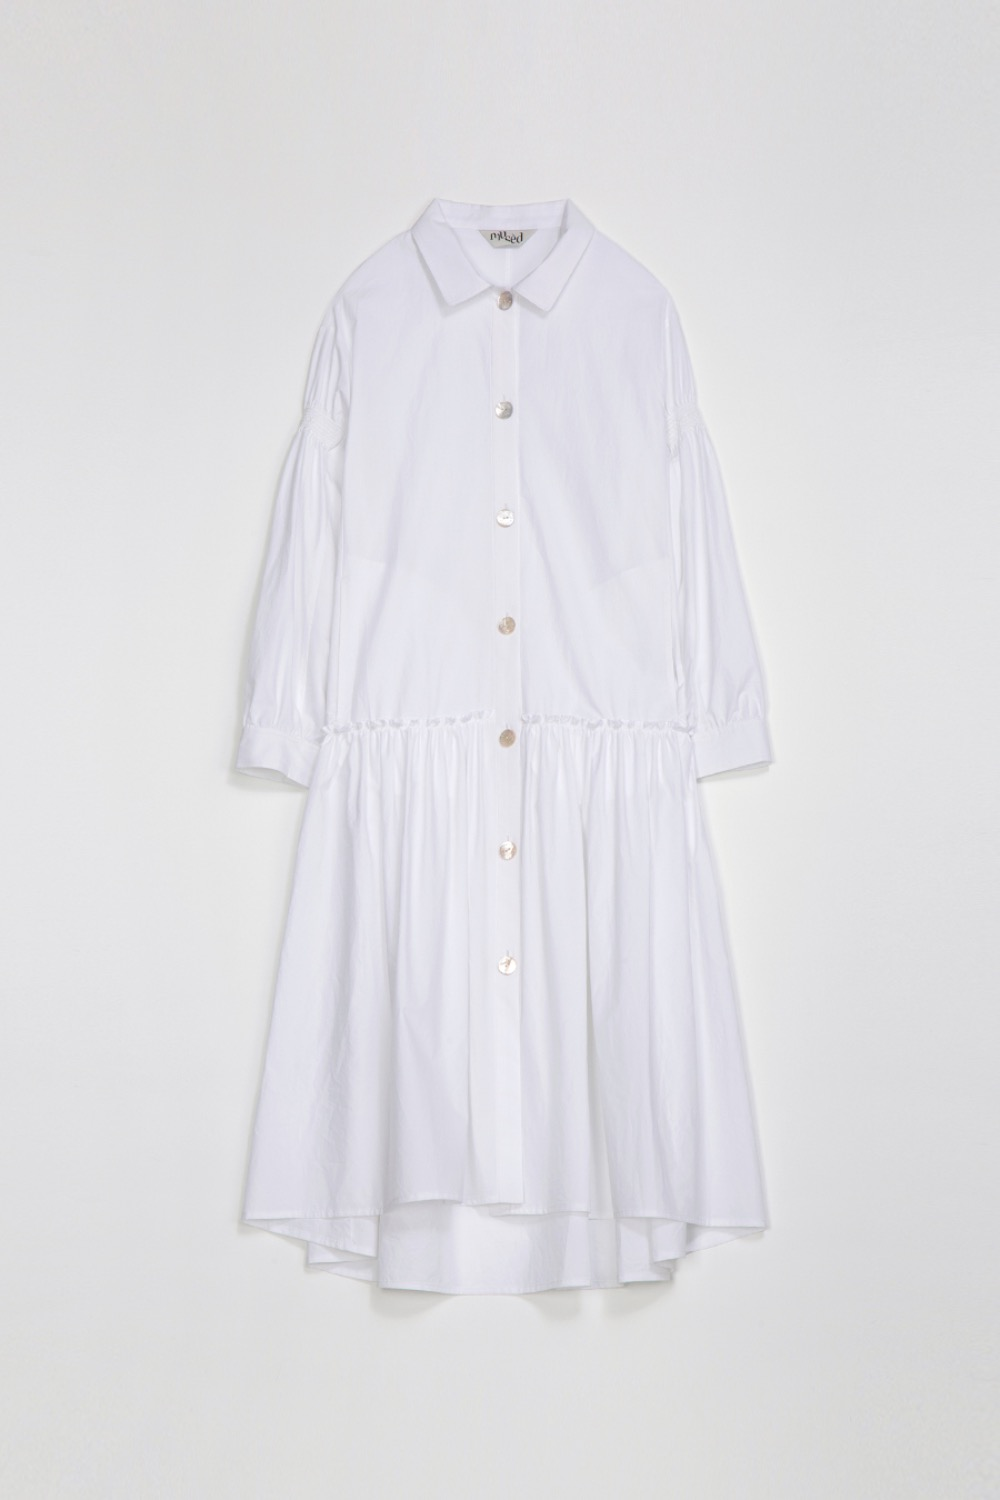 SAISON SHIRT DRESS - OPTIC WHITE COTTON